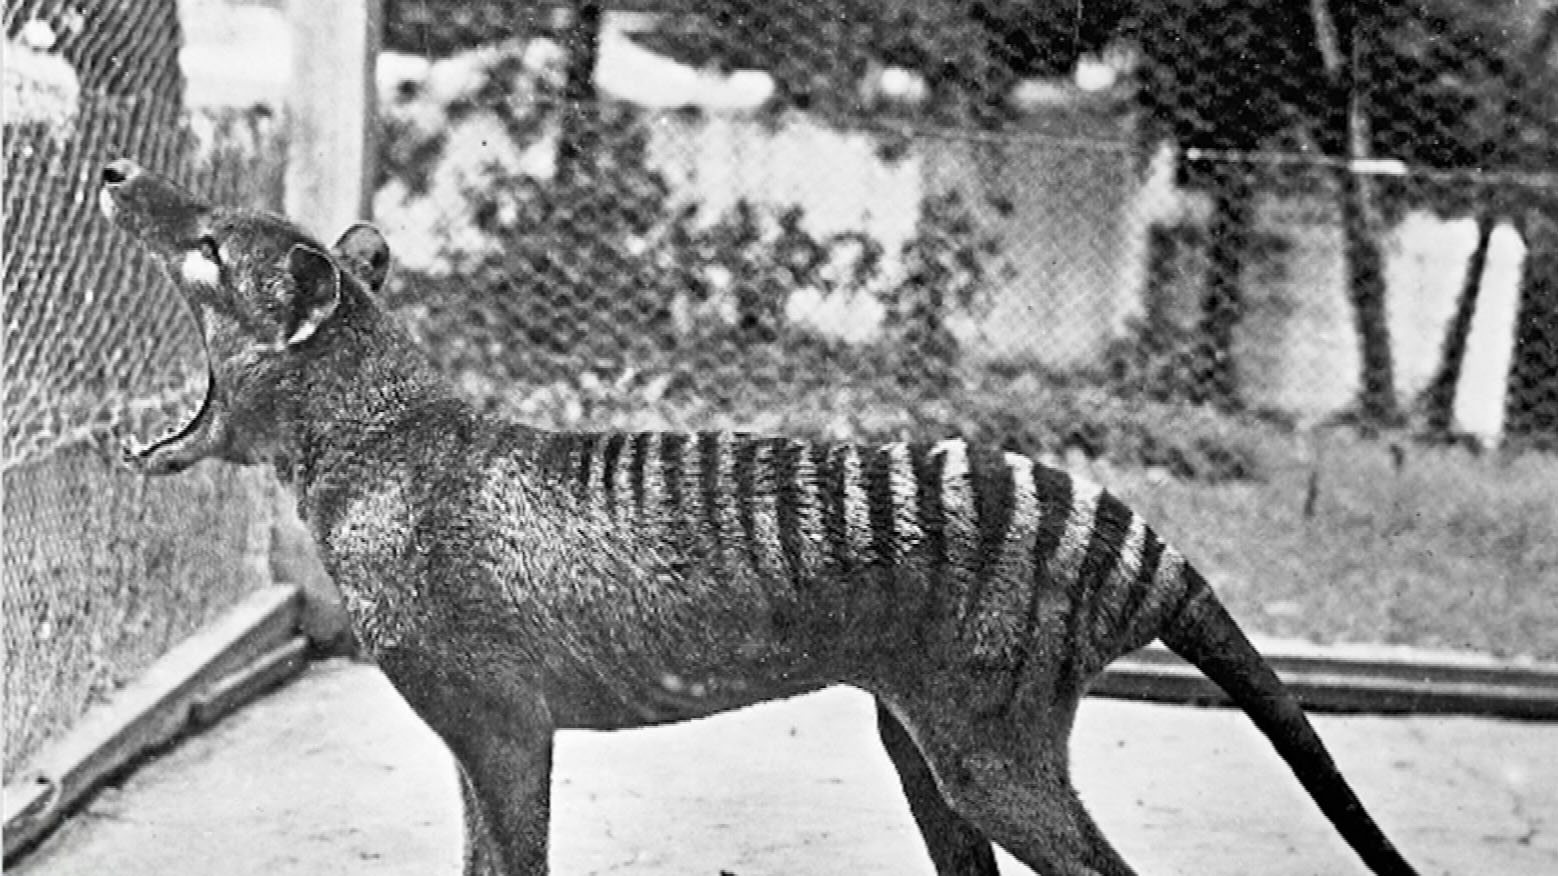 'Precious' footage from 1935 of last-known Tasmanian tiger released